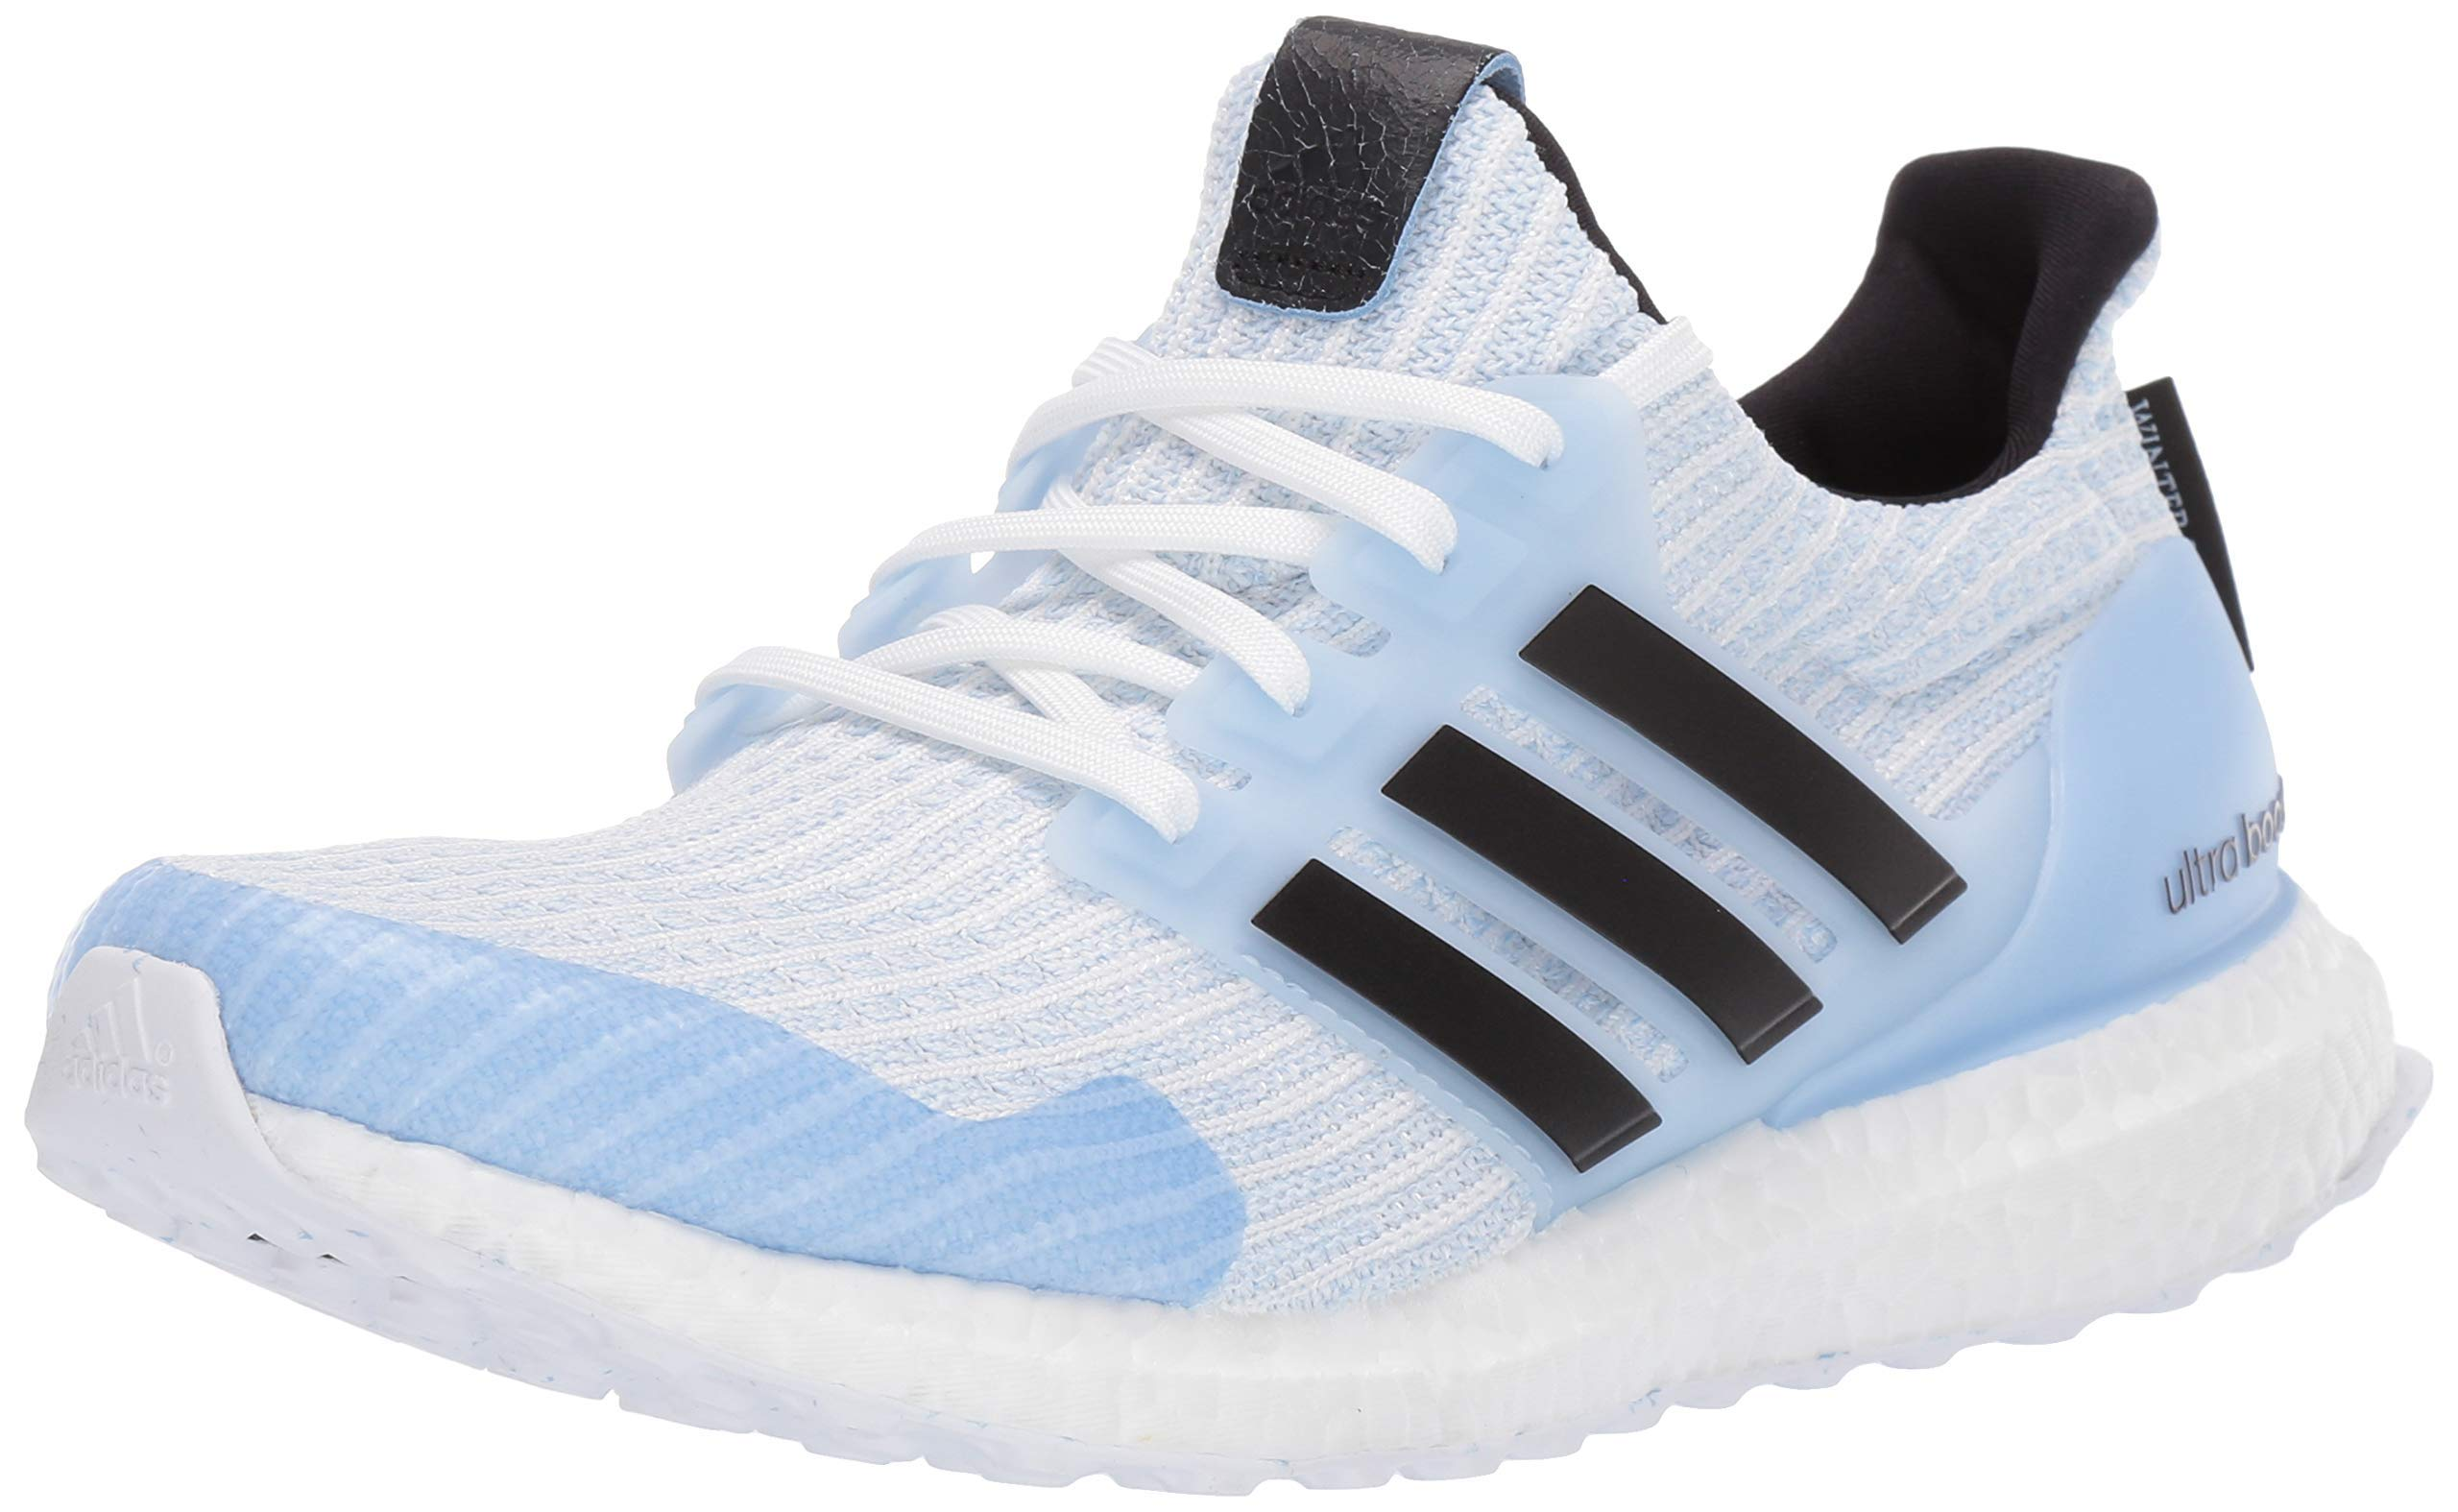 adidas x Game of Thrones Men's Ultraboost Running Shoes, White Walker, 8.5 M US by adidas (Image #1)